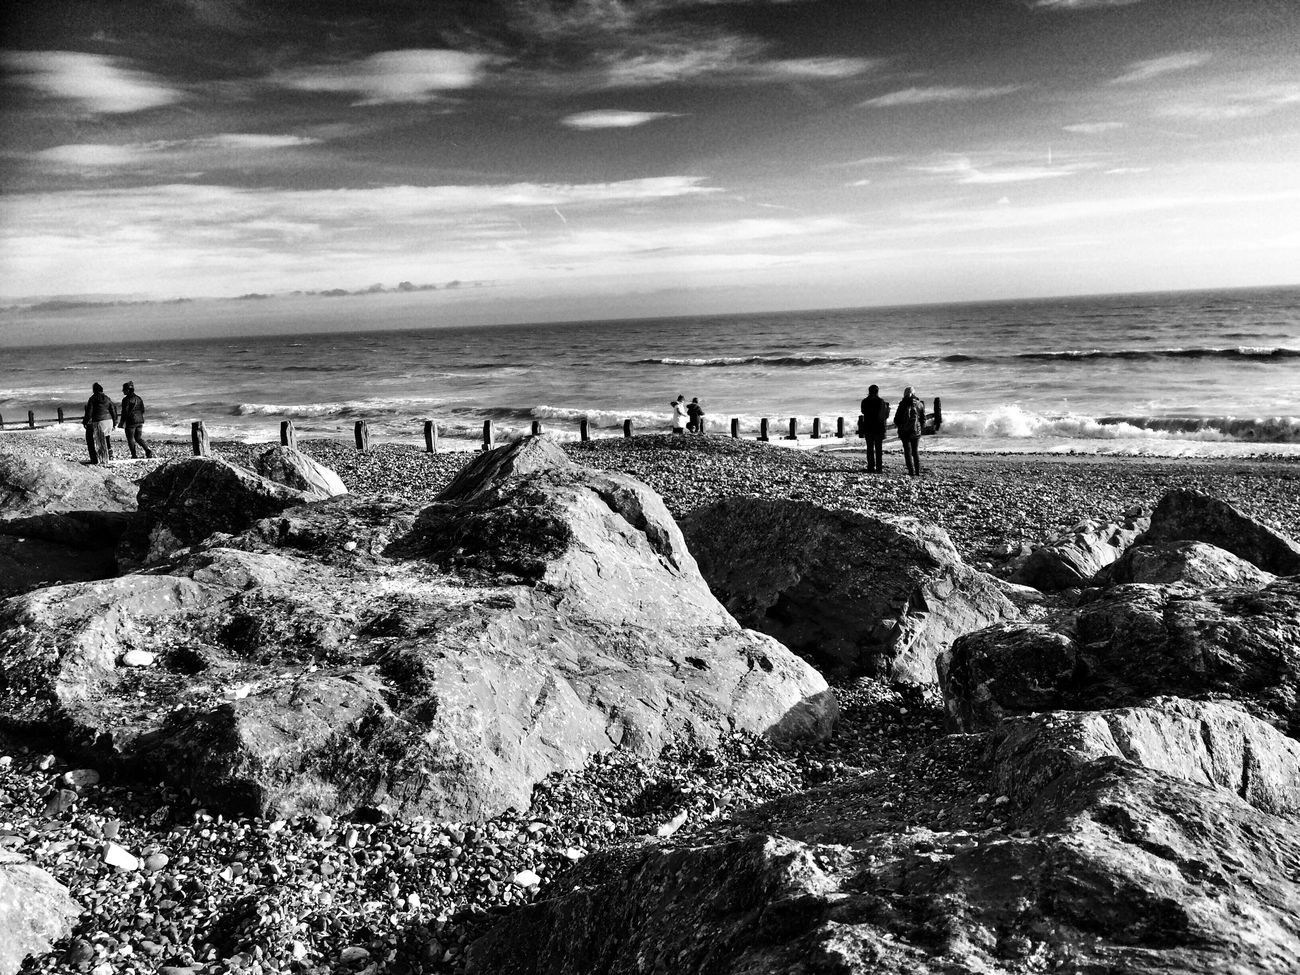 Rocks. Sea Sky Horizon Over Water Beach Blackandwhite Fortheloveofblackandwhite Monochrome Monochrome Photography Monoart Monochromatic Bnw IPhoneography